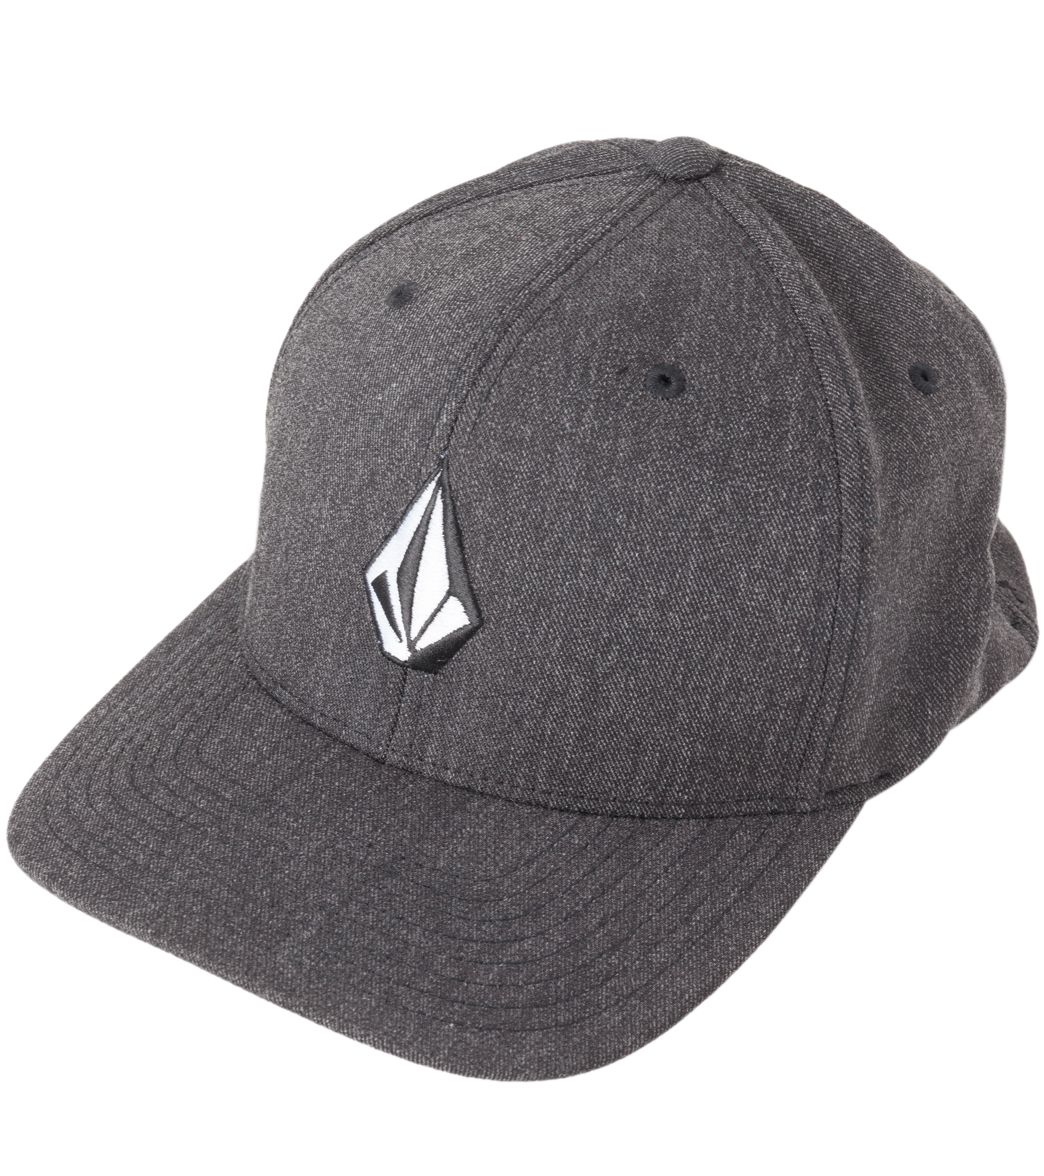 size 40 5fe11 f4fd6 Volcom Men s Full Stone Heather X-Fit Hat at SwimOutlet.com